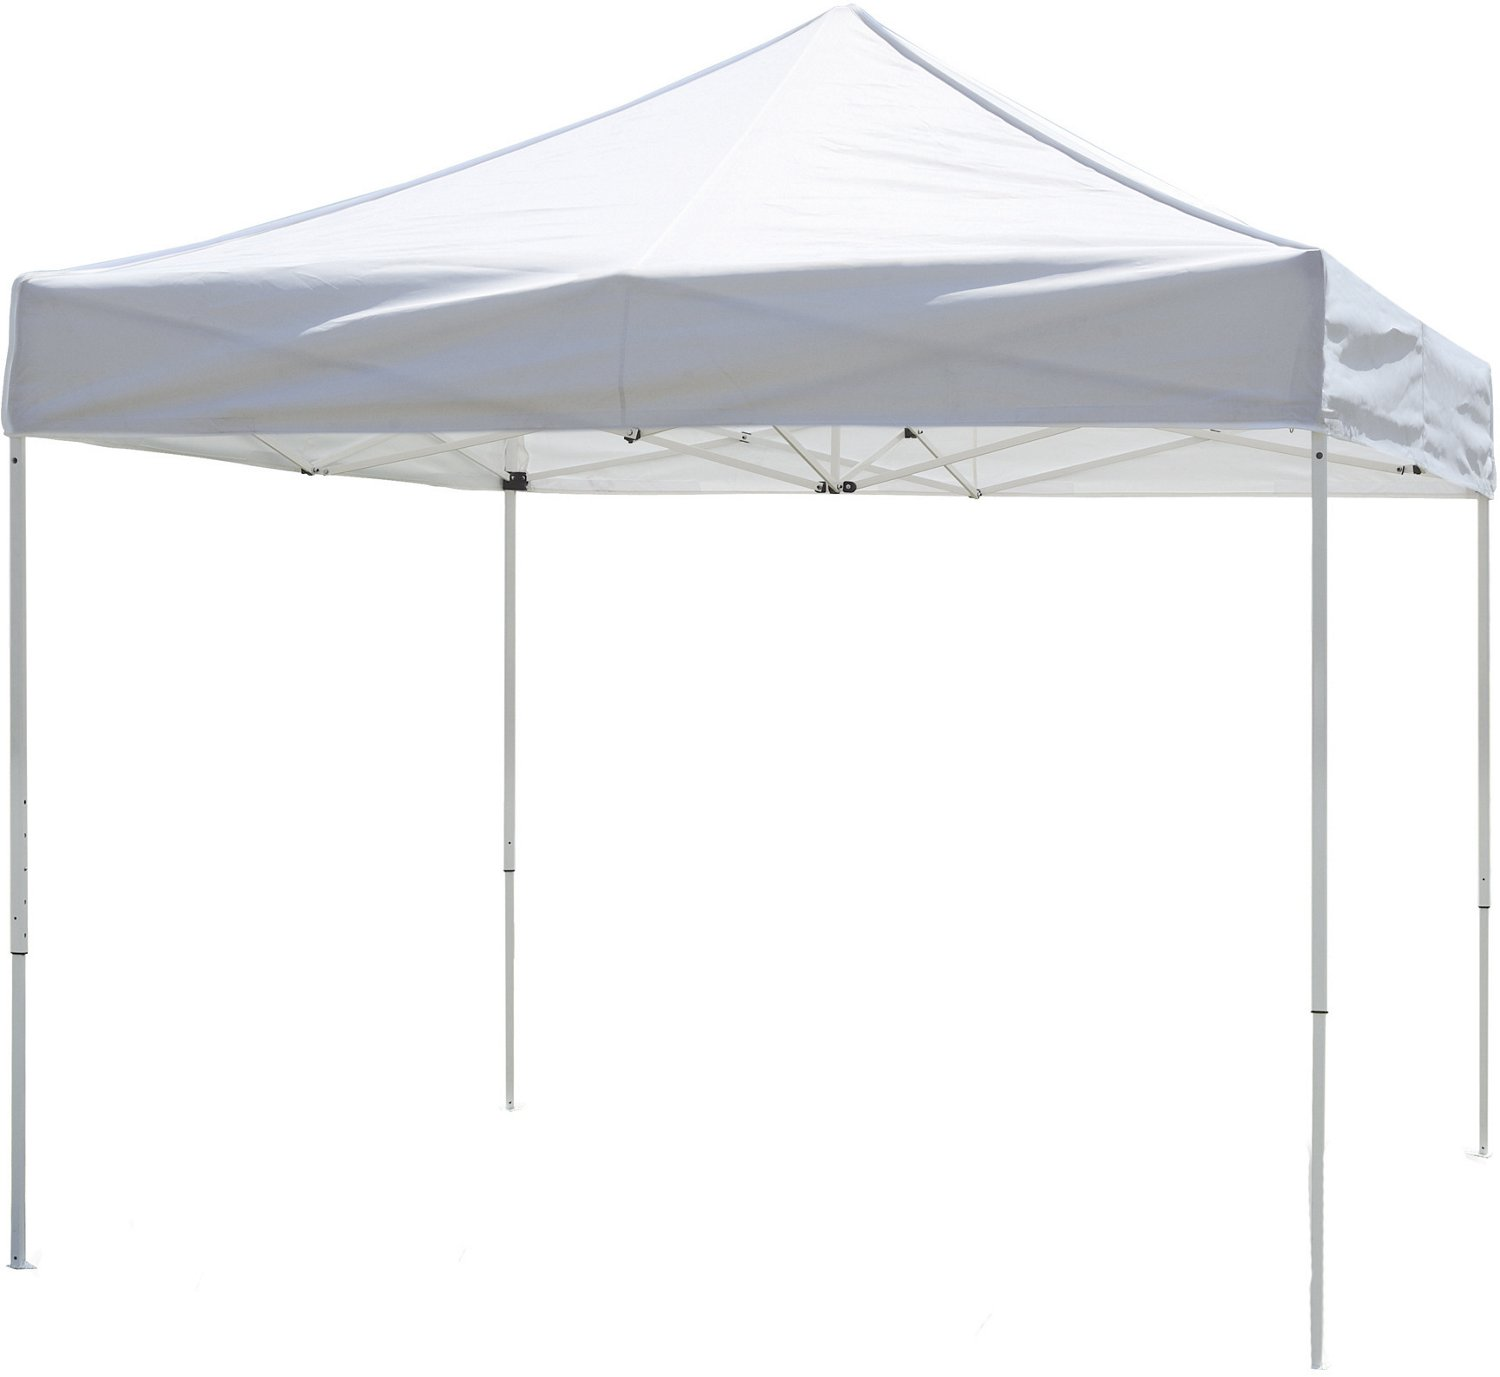 ... 10u0027 Commercial Canopy. Canopies. Hover/Click to enlarge  sc 1 st  Academy Sports + Outdoors & Z-Shade Venture 10u0027 x 10u0027 Commercial Canopy | Academy